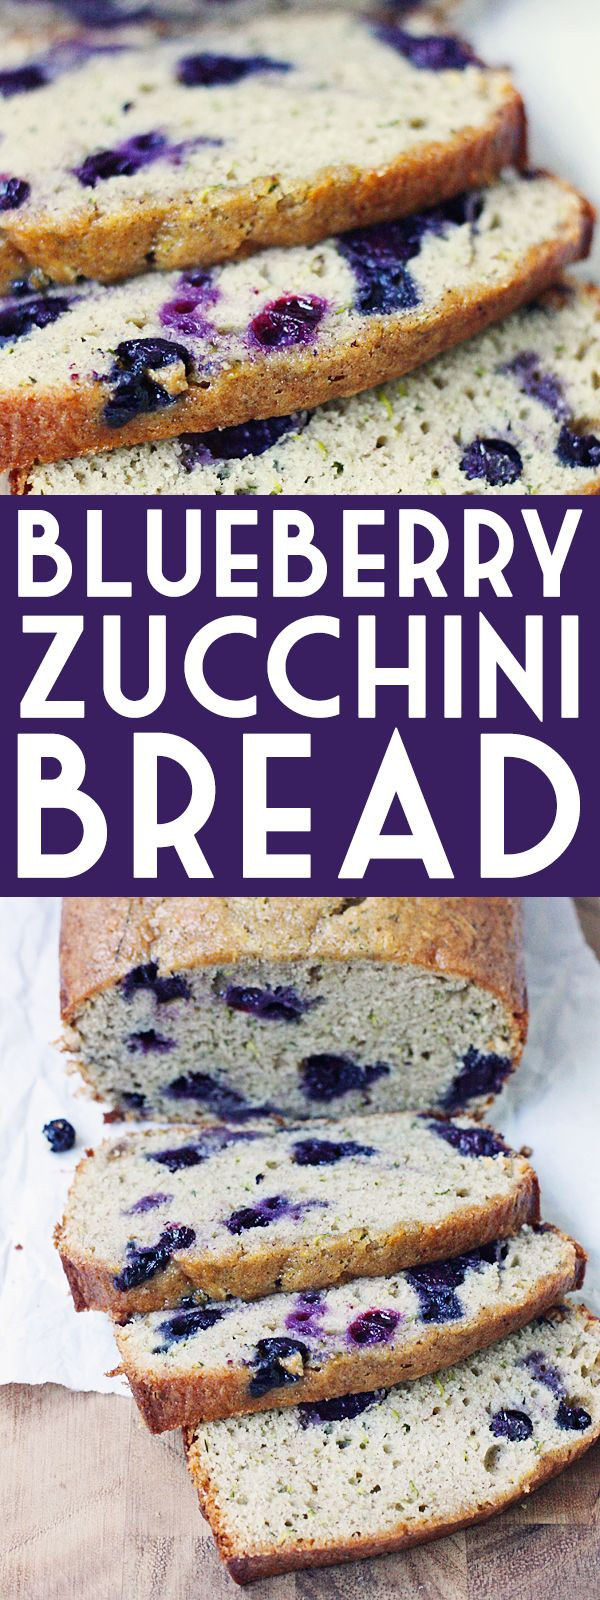 Blueberry Zucchini Bread -- Baking a batch of blueberry zucchini bread is one of the best ways to use all that fresh garden zucchini and sweet, summer-ripened blueberries. | isthisreallymylife.com